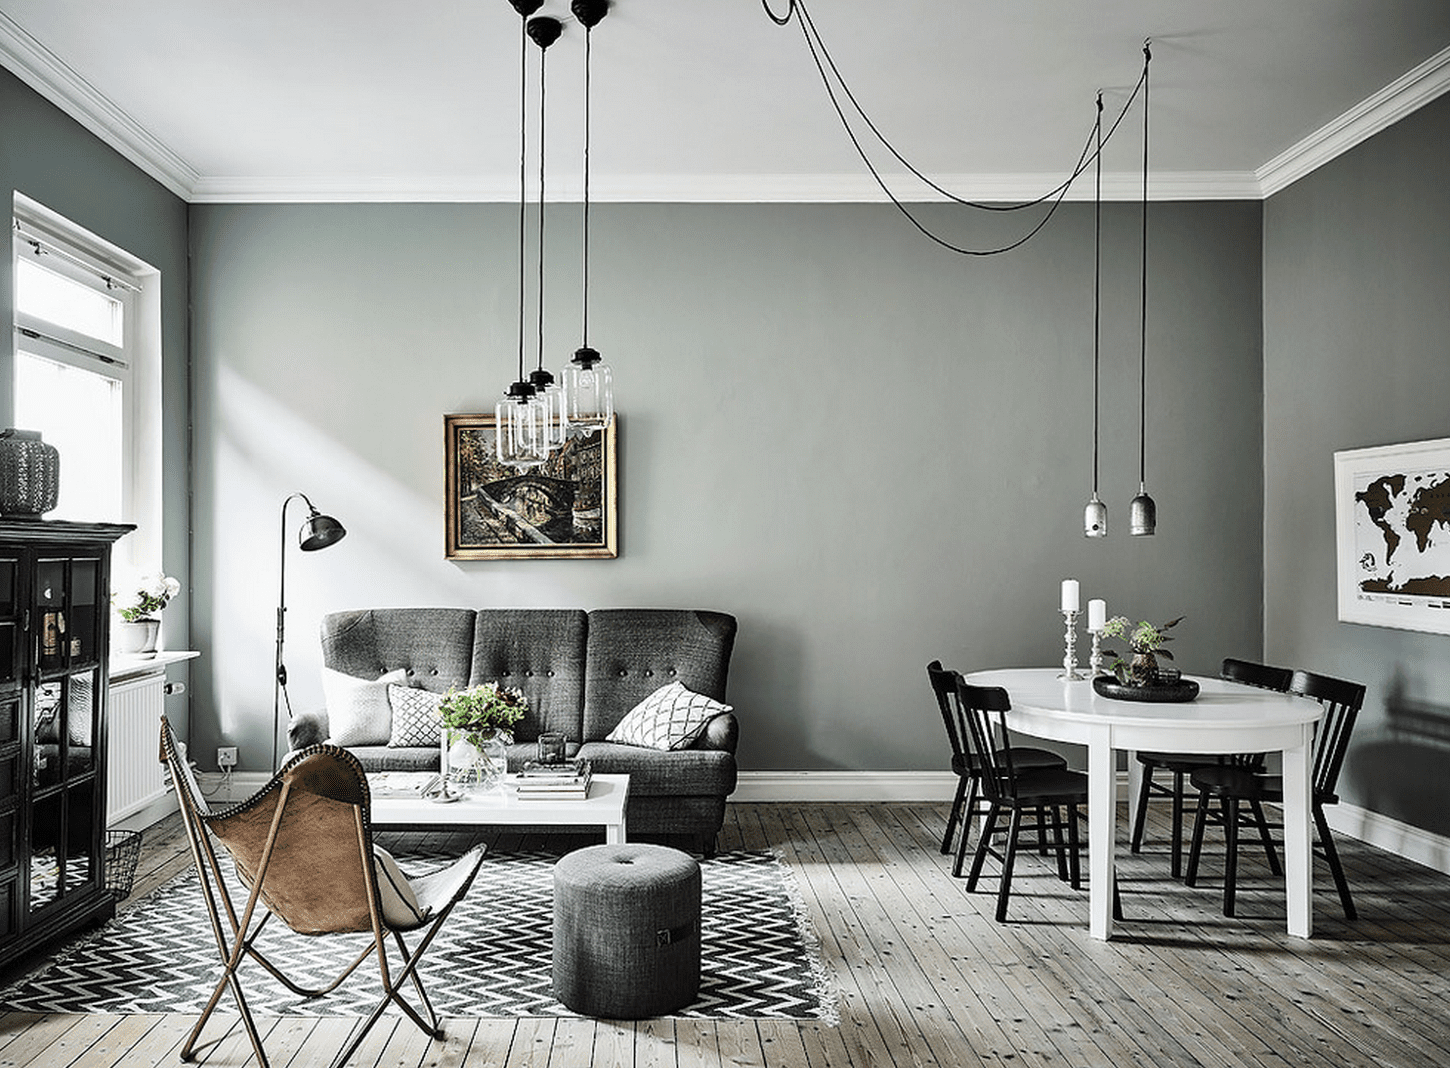 Le gris vert dans la d co salon scandinave industriel inspiration style contemporain - Salon deco industriel ...